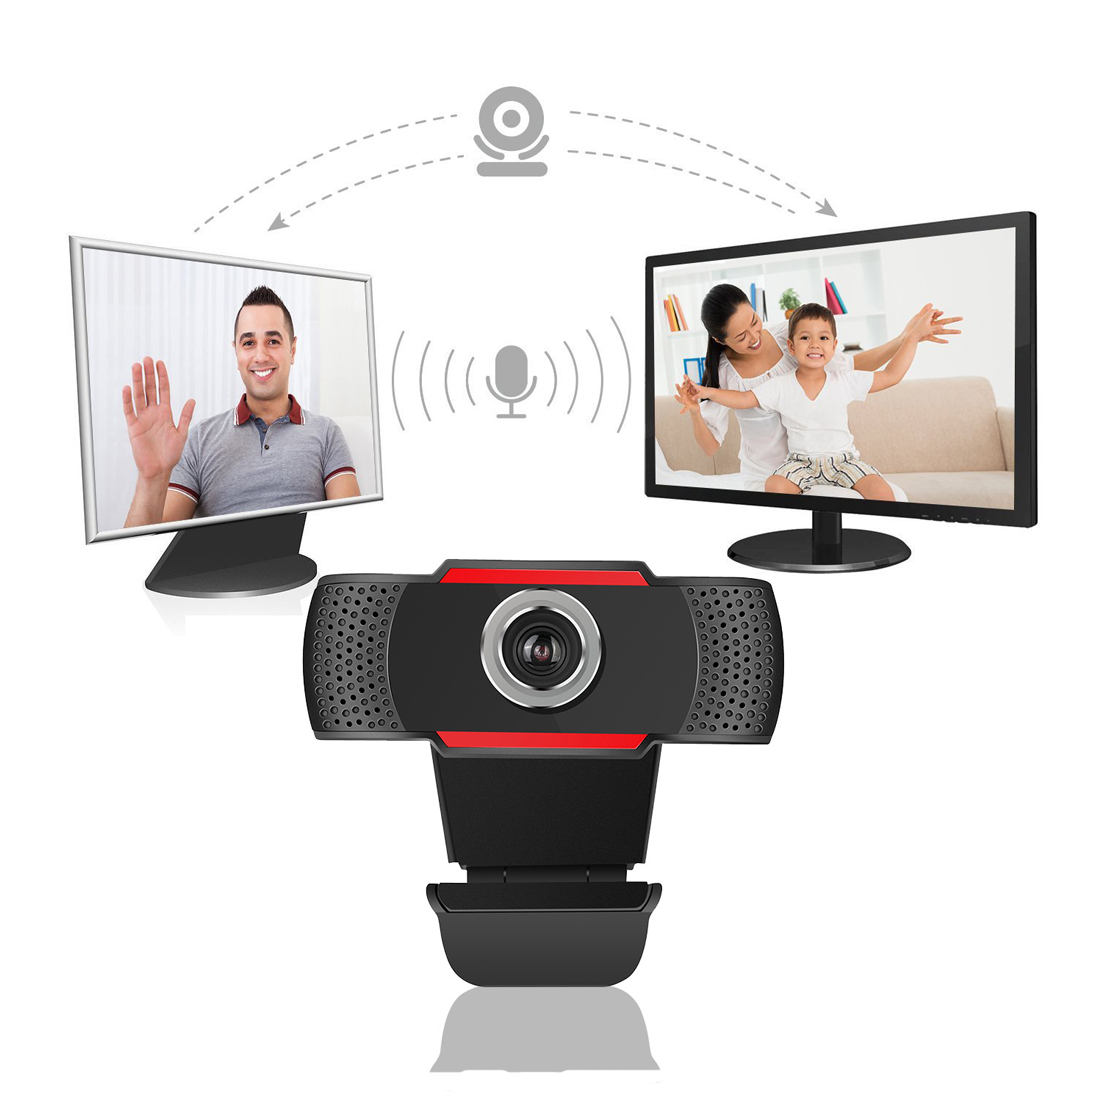 USB <font><b>Web</b></font> Cam Webcam HD 300 Megapixel PC Camera with Absorption Microphone MIC for Skype for Android TV Rotatable Computer Camera